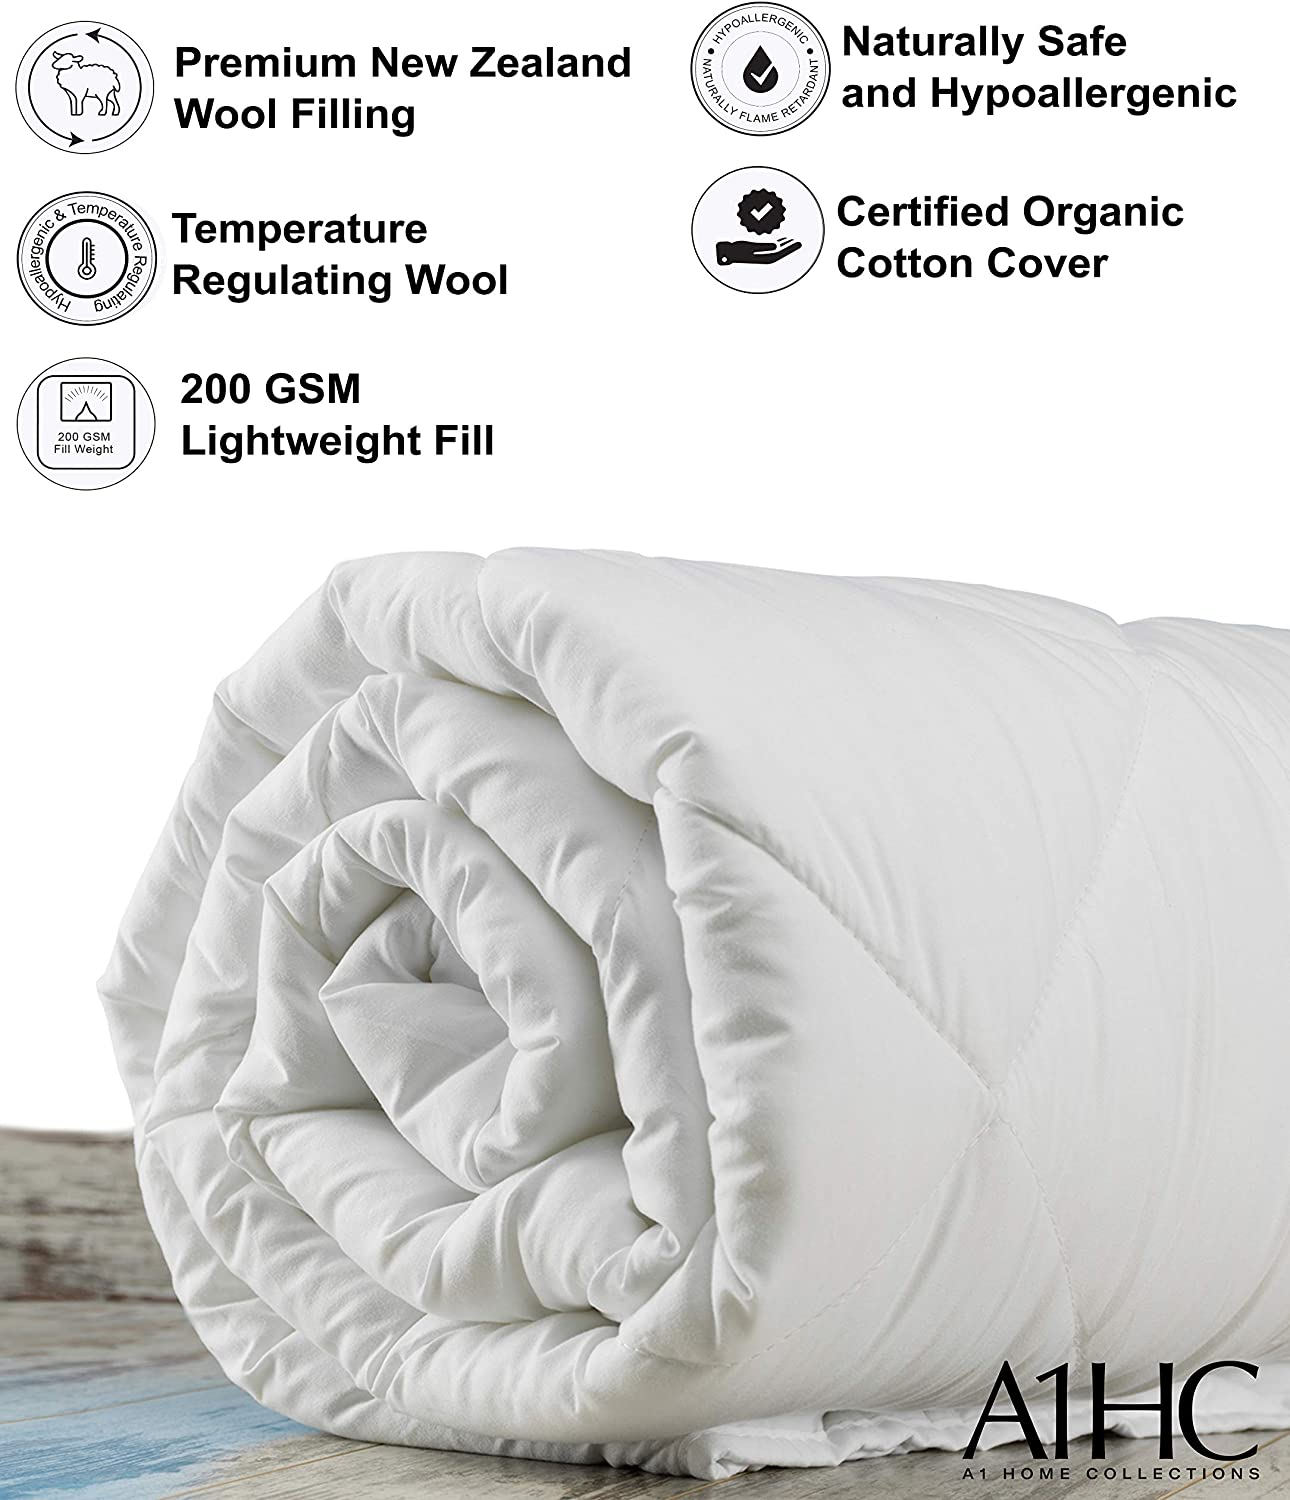 108X92 White KING A1 Home Collections 100/% Pure New Zealand 200 GSM Wool Light Weight Summer Spring Certified Organic Cotton Cover 8 Ties Duvet Insert